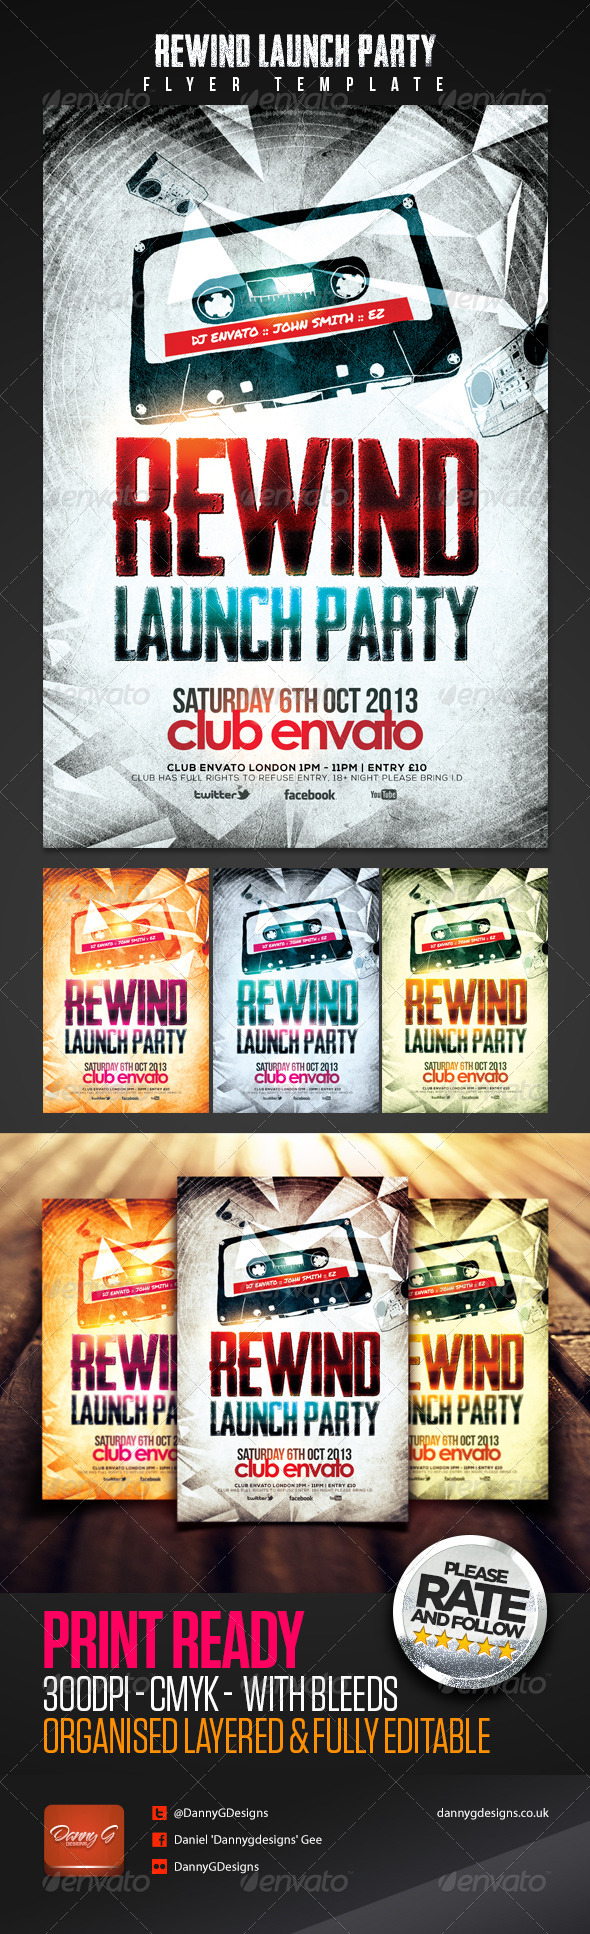 Rewind Launch Party Flyer Template - Clubs & Parties Events